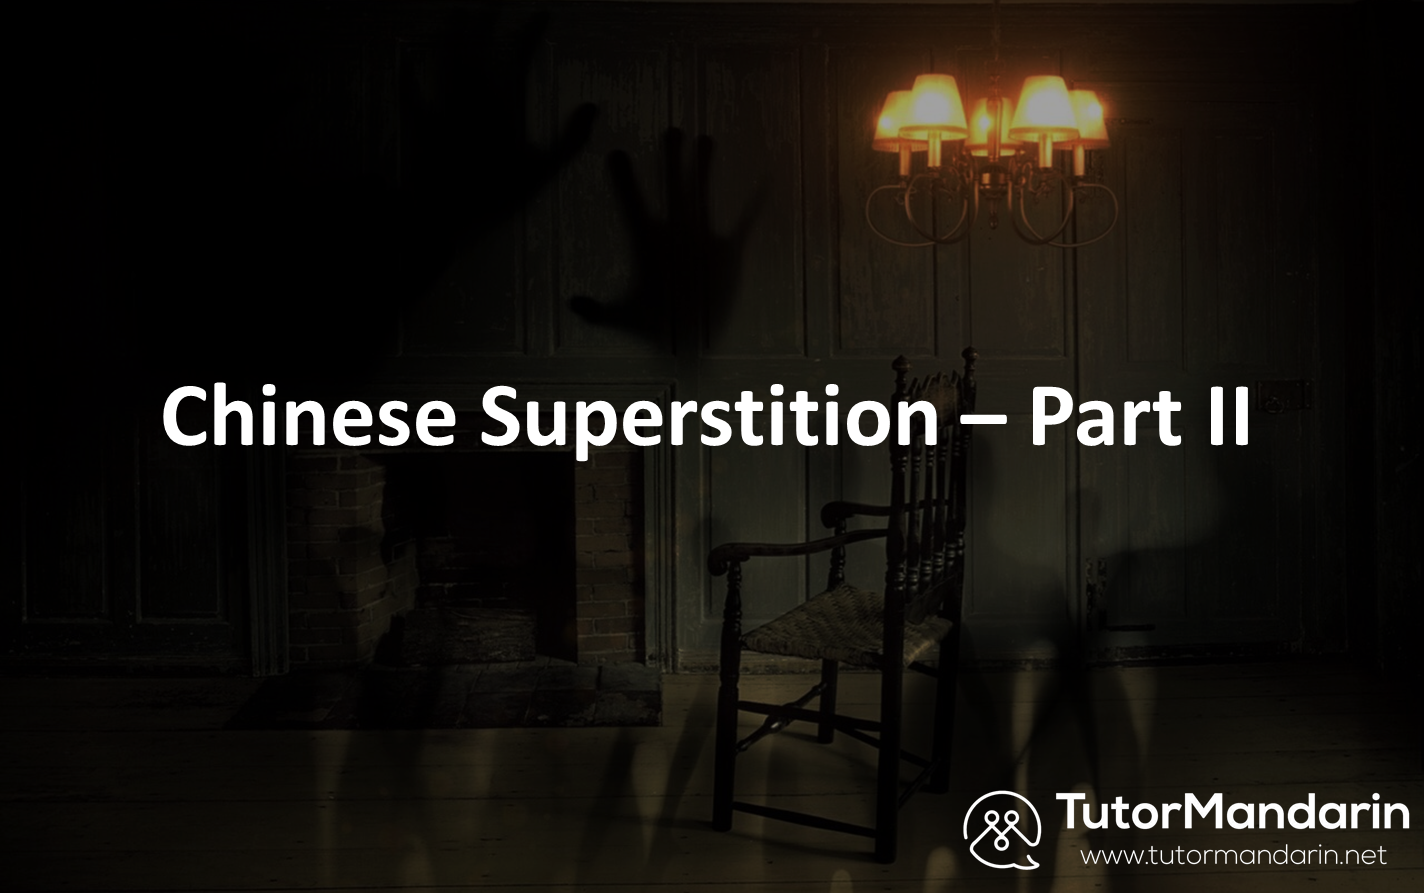 Chinese Superstitions Part II - TutorMandarin: Your Online Mandarin ...